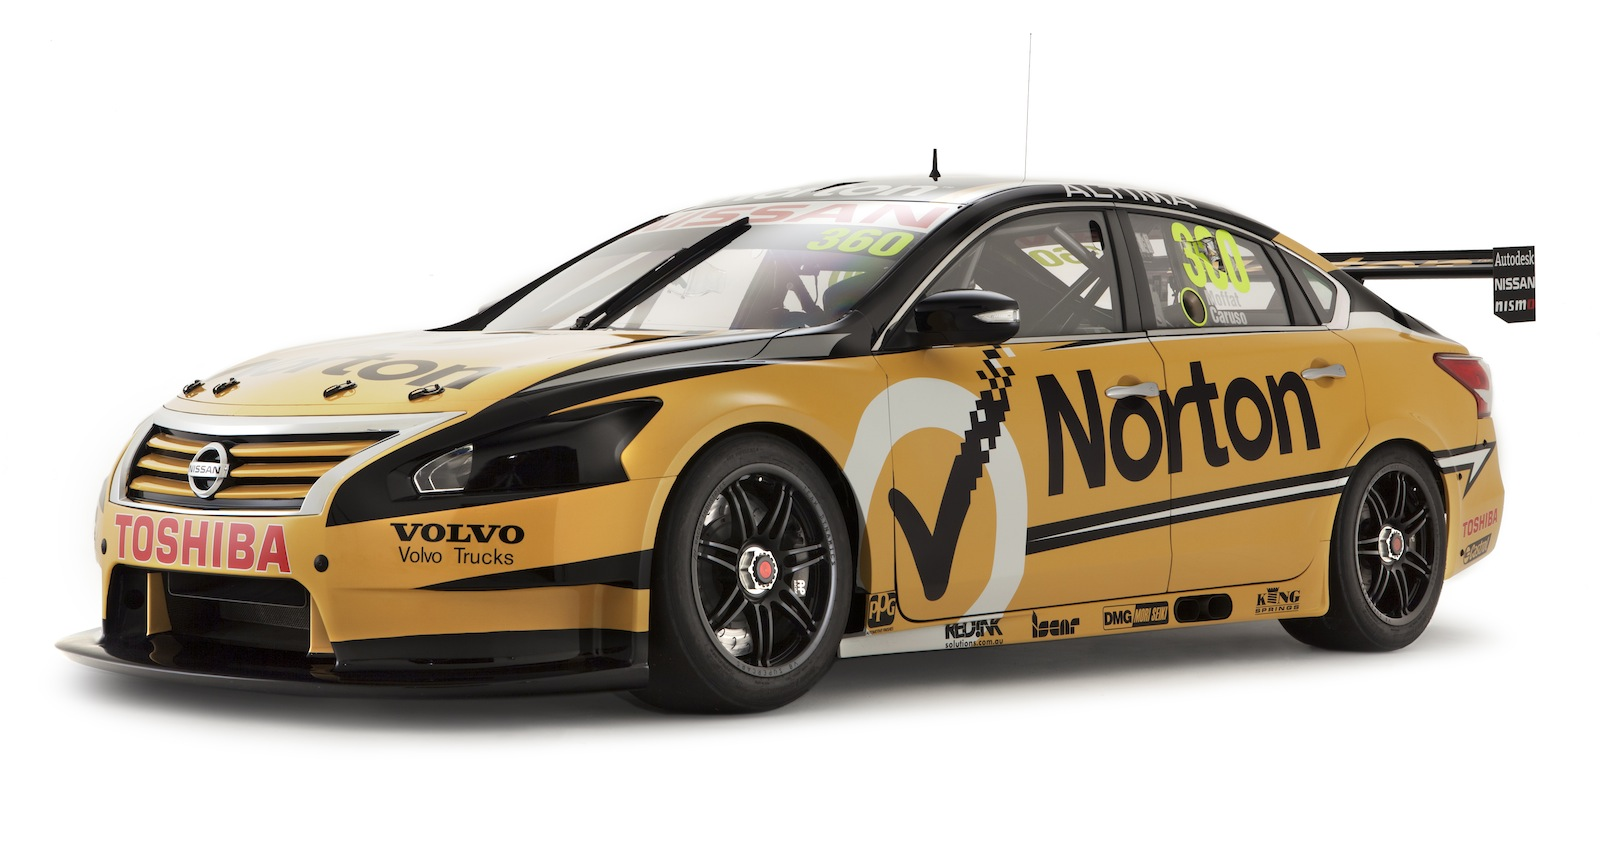 Nissan Altima V8 Supercars revealed - Photos (1 of 17)